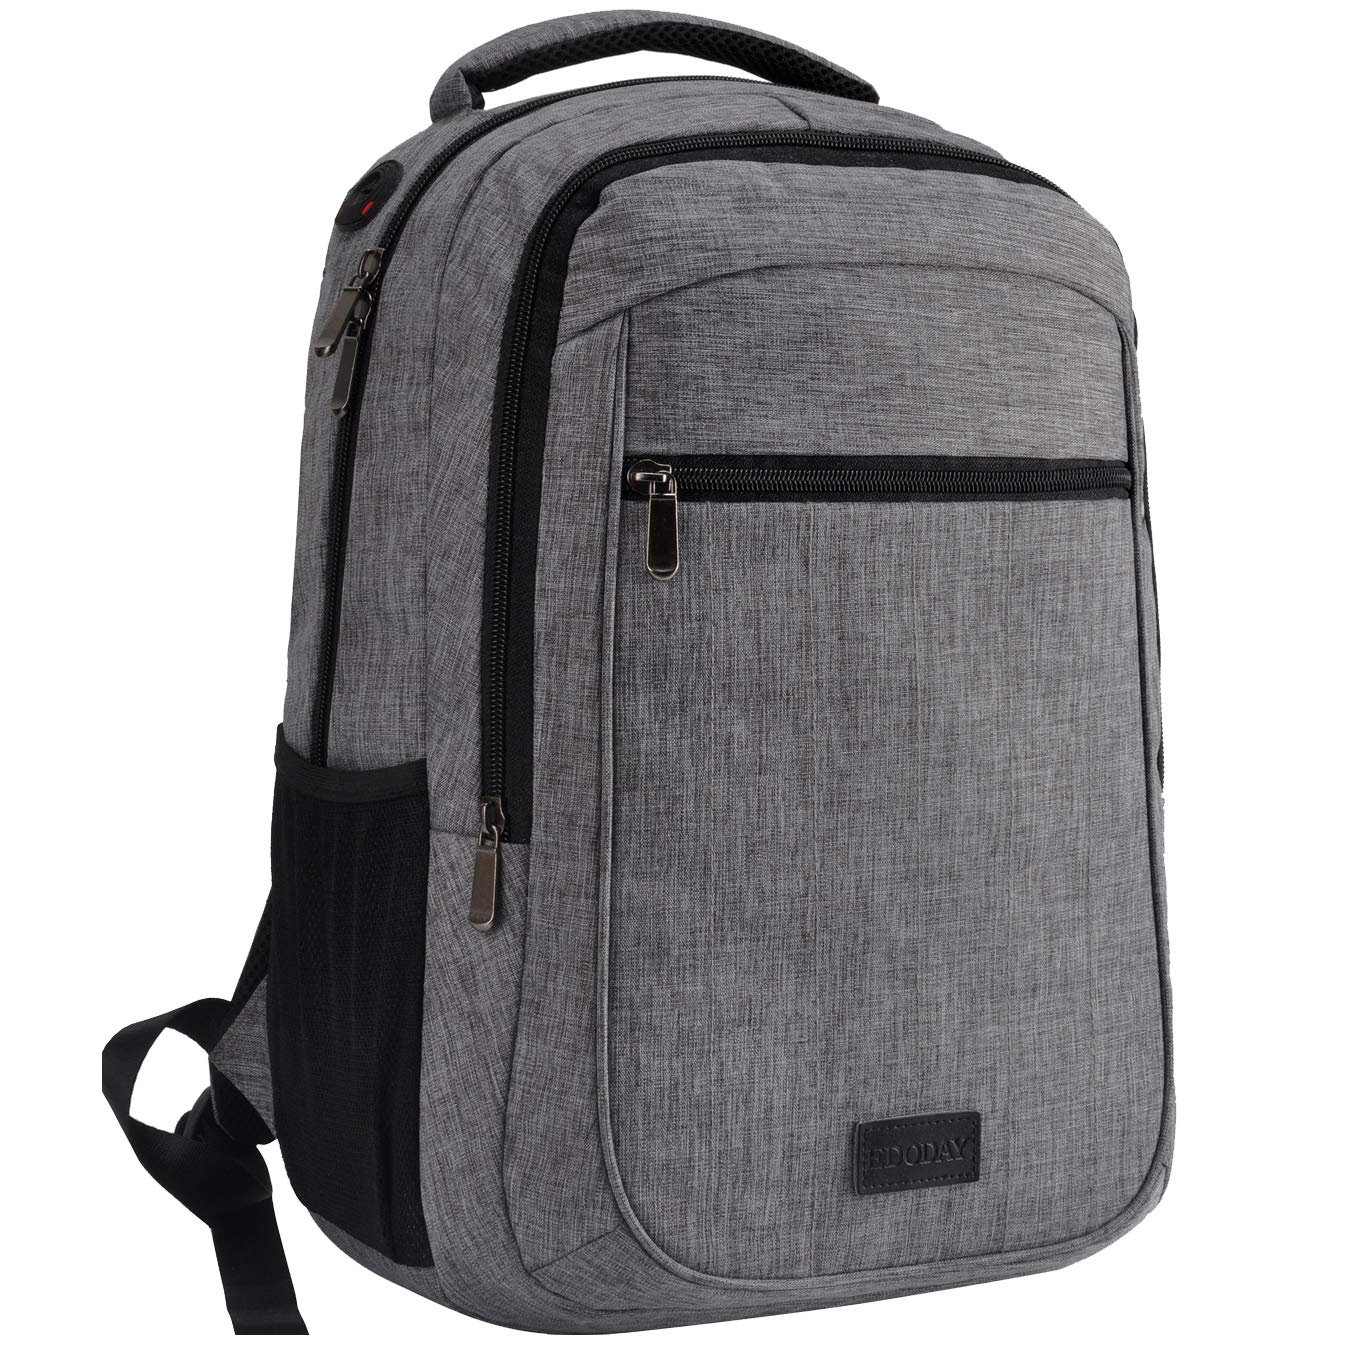 Casual Backpack,Daypack Backpack for Women Men Colleage High School,EDODAY Travel Backpack Daypack (LightGray)